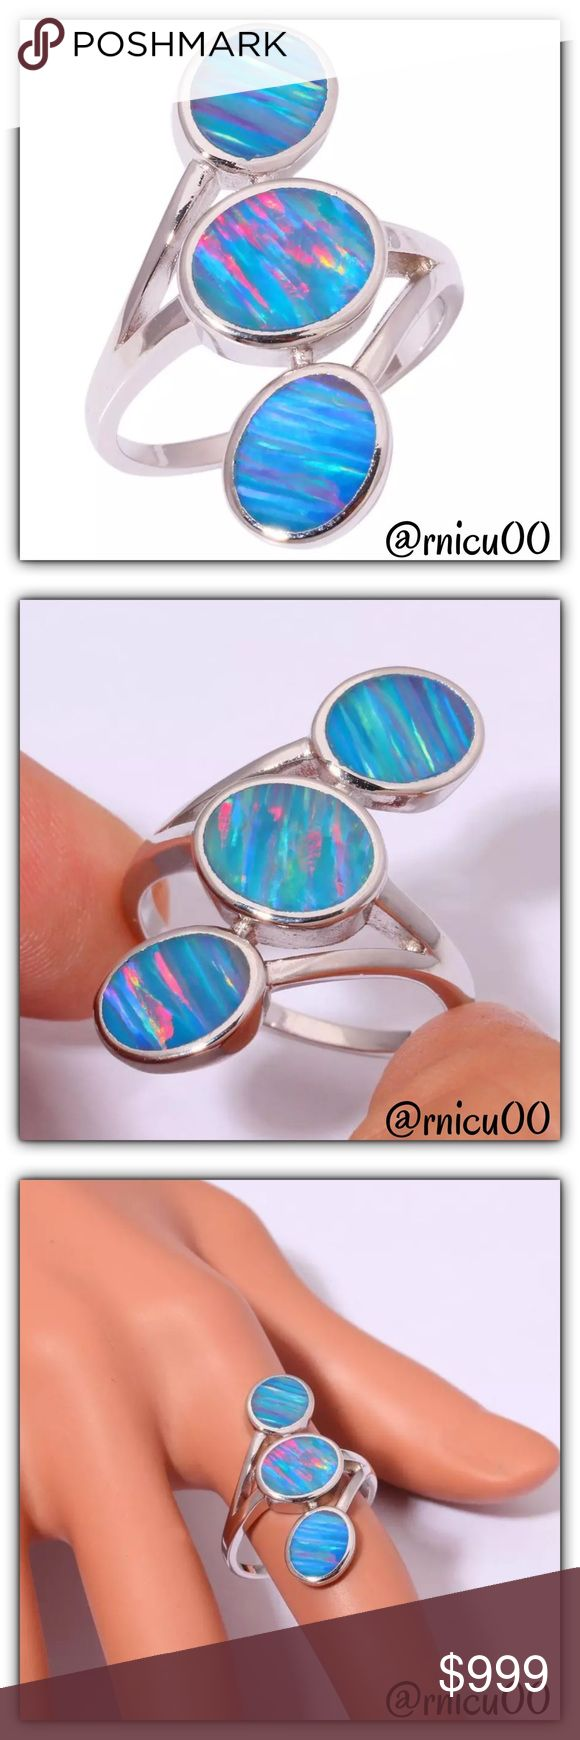 Coming Soon-Rainbow Fire Opal Silver Filled Ring! Details Soon!  *NO TRADES *Prices are FIRM-Listed at Lowest Price Unless BUNDLED! *Sales are Final-Please Read Descriptions! Boutique Jewelry Rings